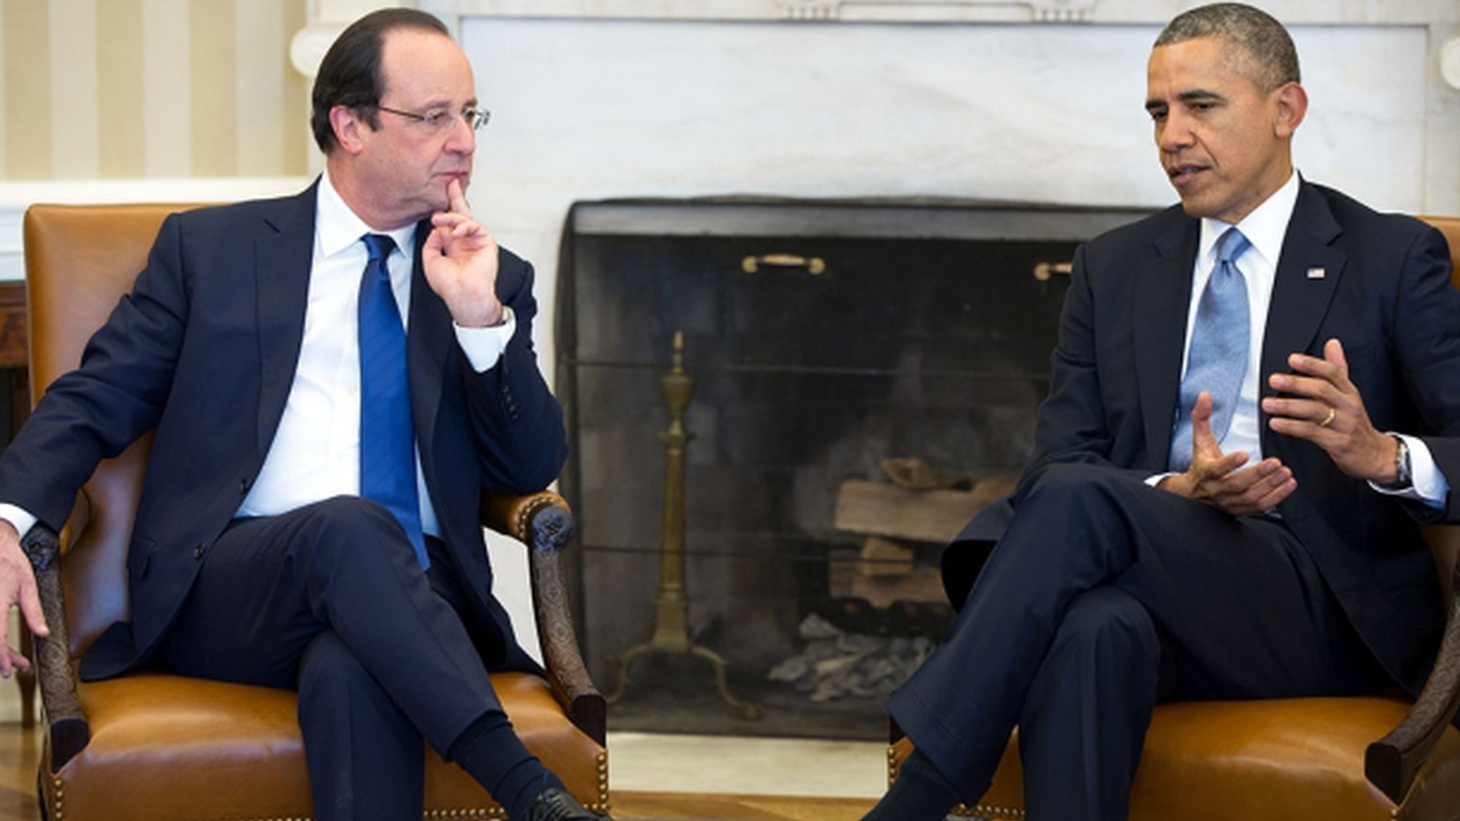 """France wants the US to join a """"grand and unified coalition"""" to strike back at ISIS. President Obama is already hearing calls from Democrats as well as Republicans to increase military action against the Islamic State. Terrorism is now Topic Number One for international diplomats and American politicians. But will US politics and diplomacy matter if Muslim countries don't lead the charge against ISIS on their own?"""